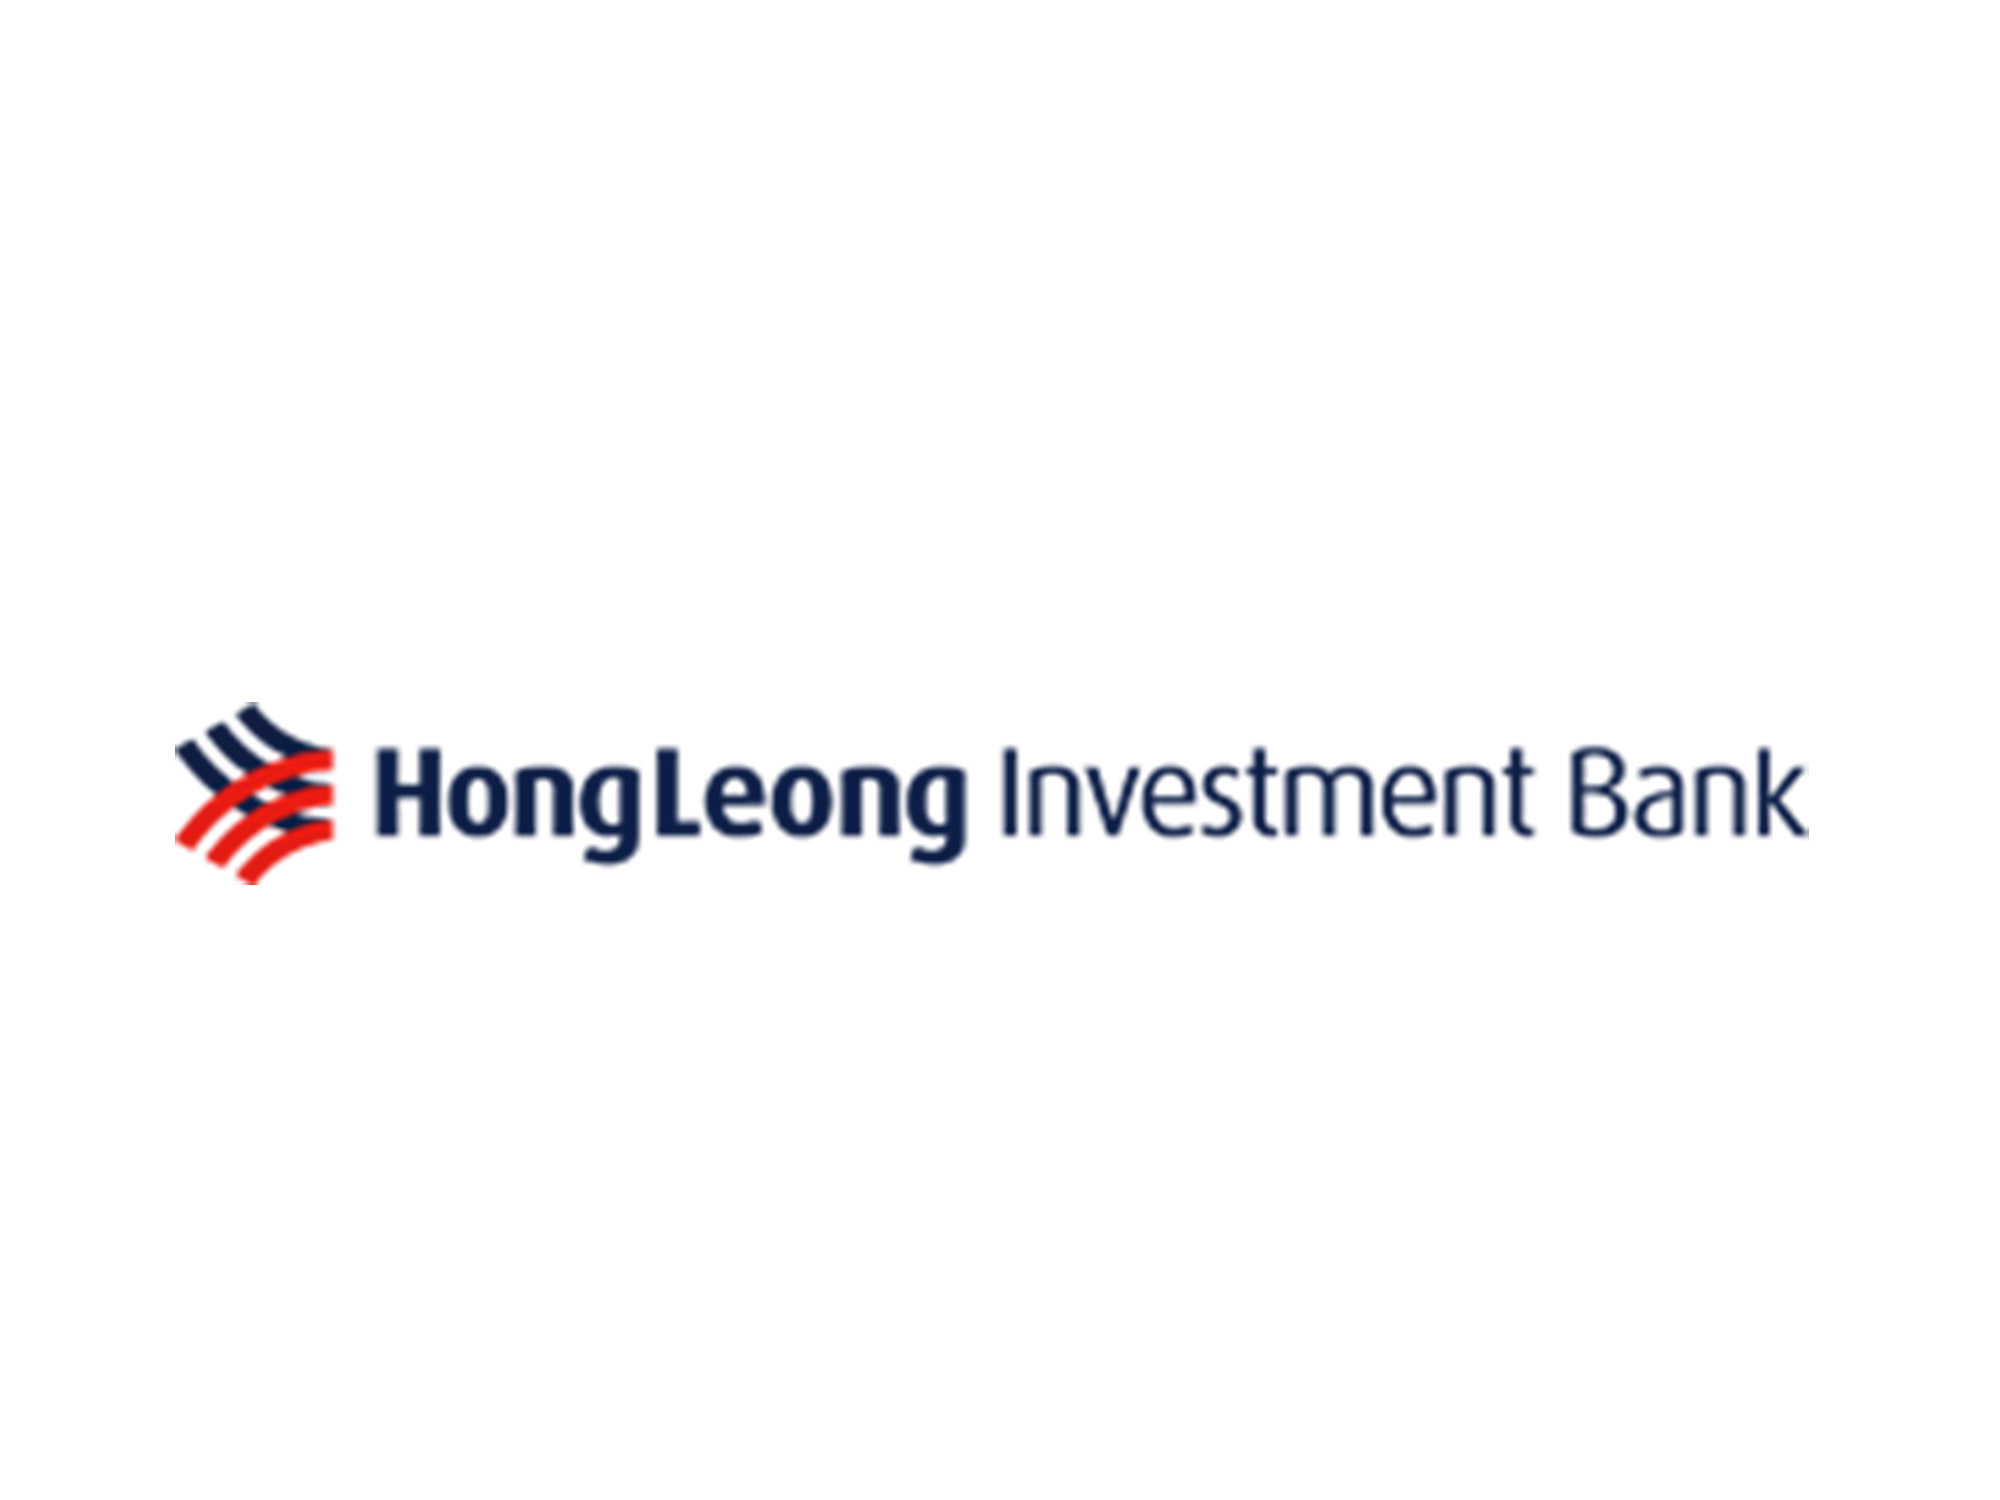 Hong leong investment account foreign direct investment meaning and definition of social mobilization